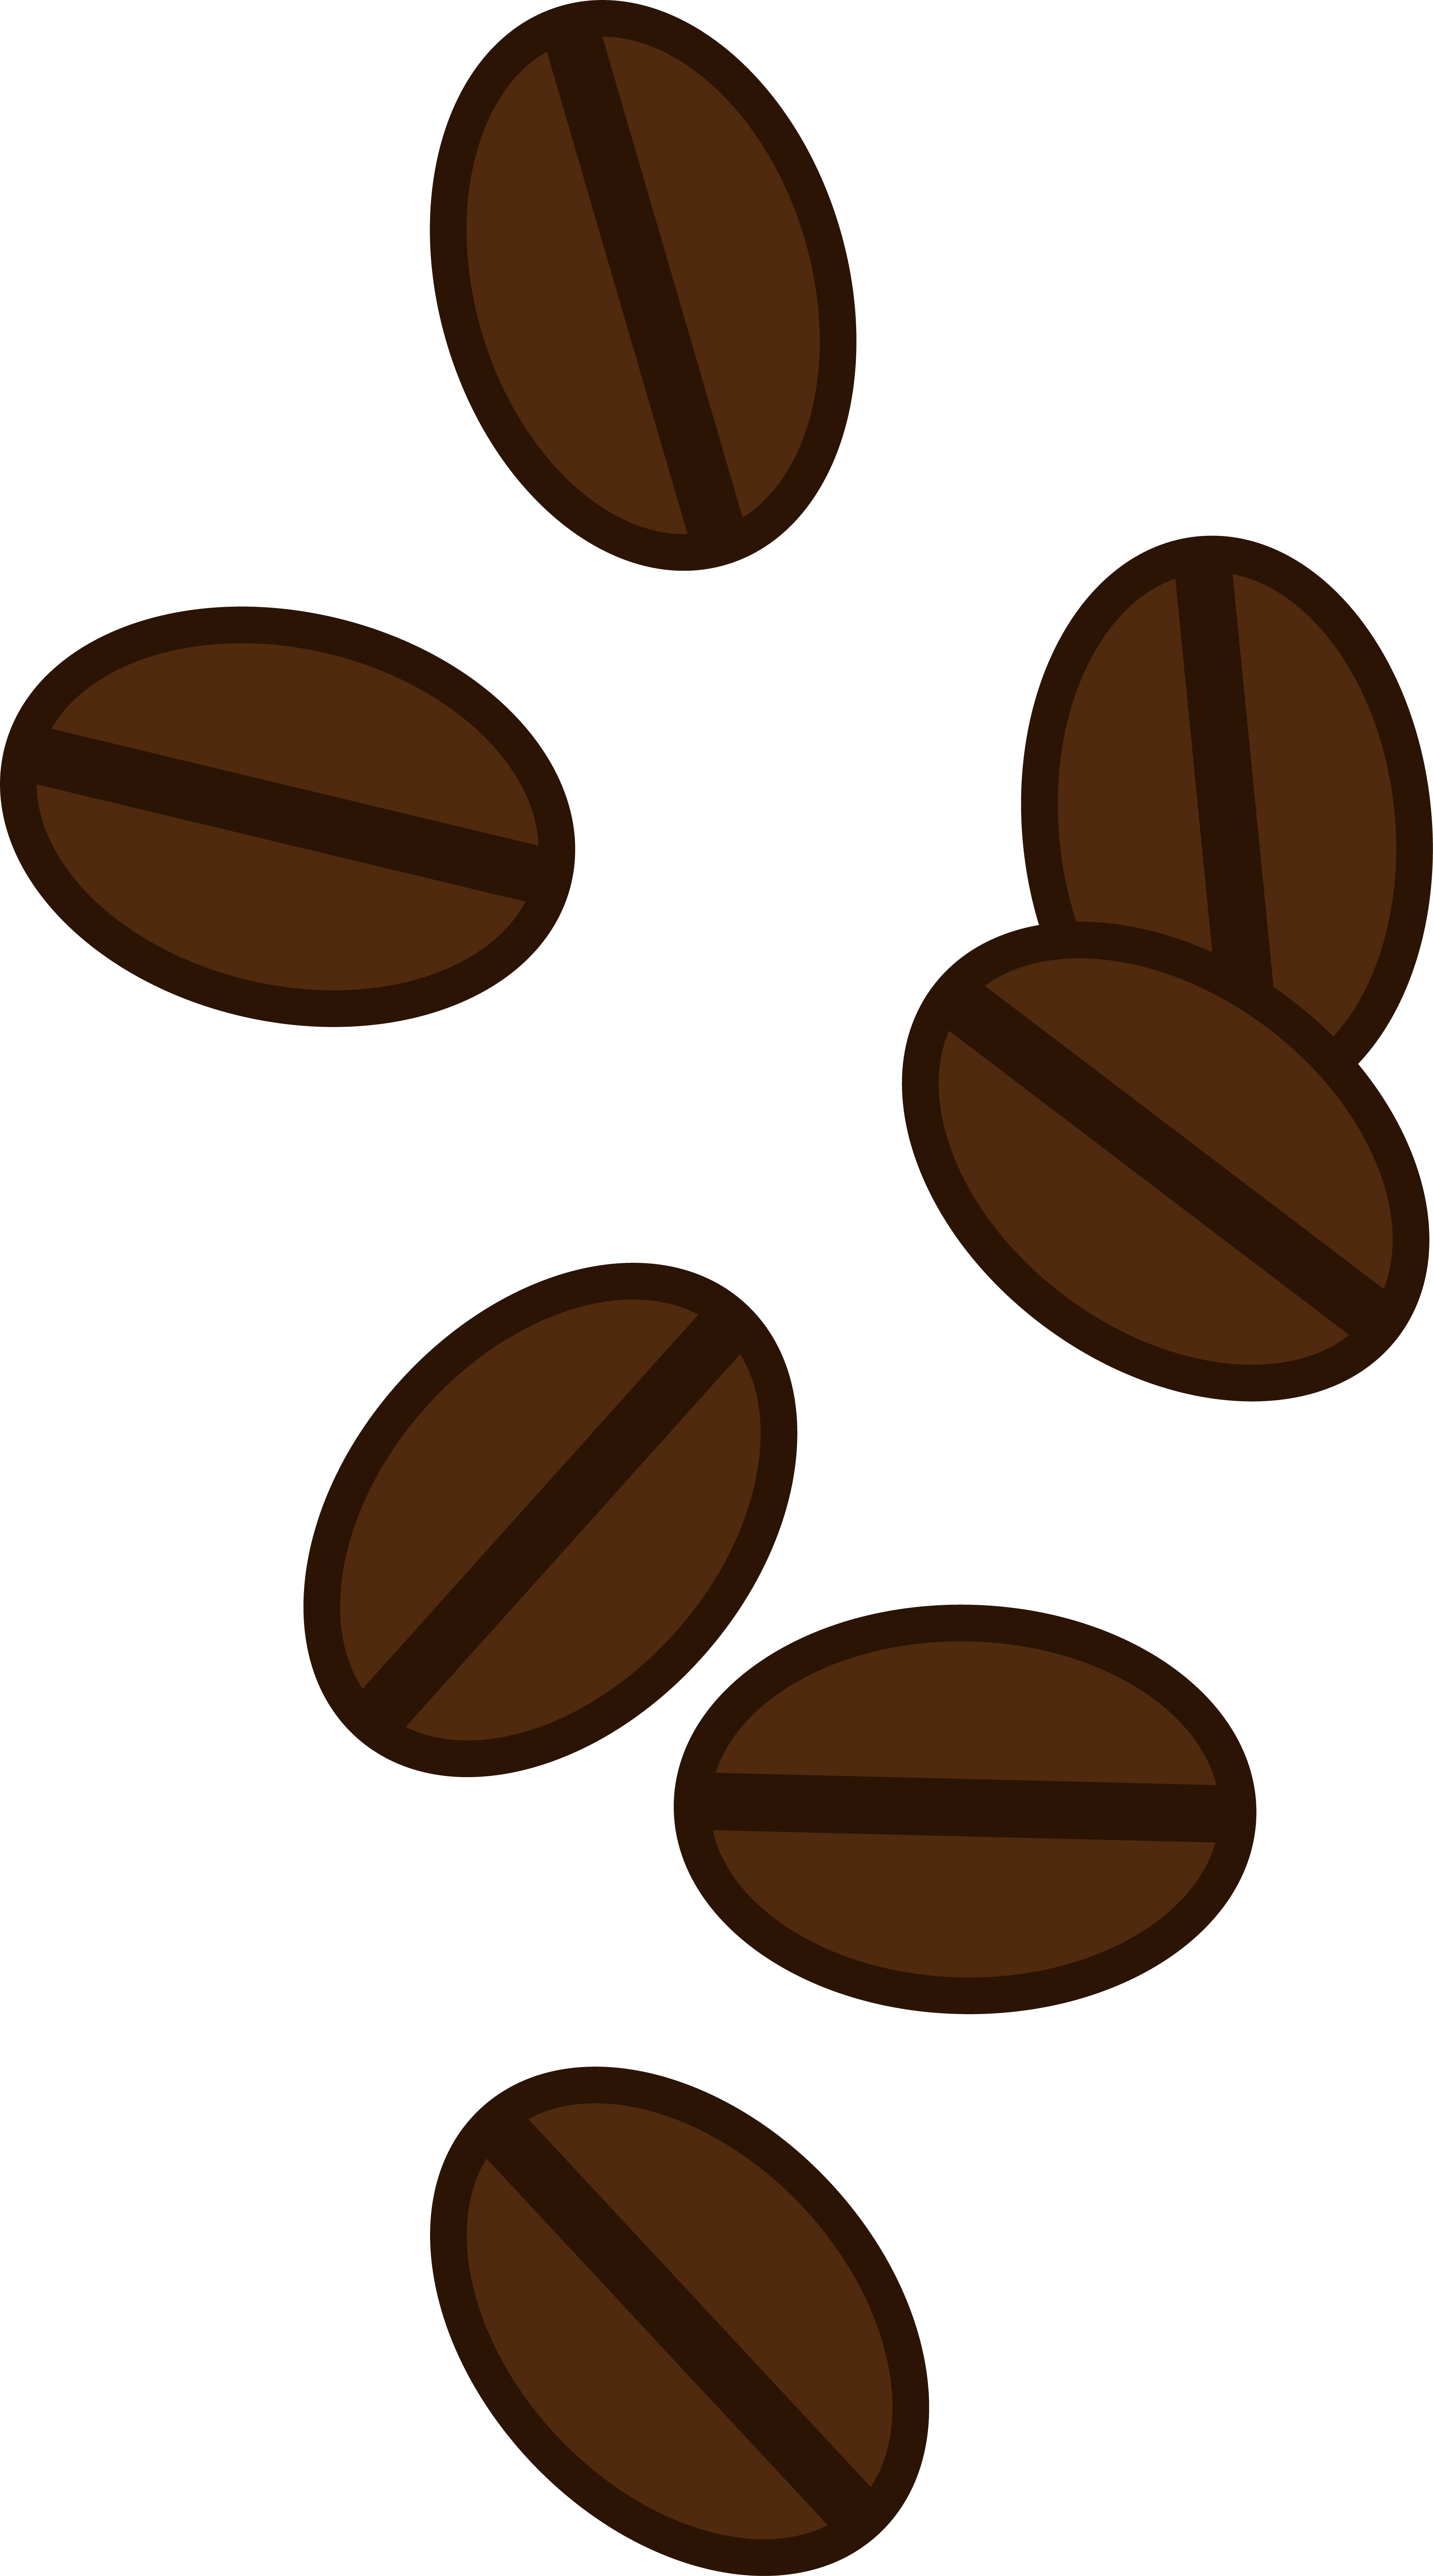 Sprout clipart coffee plant. Bean owl